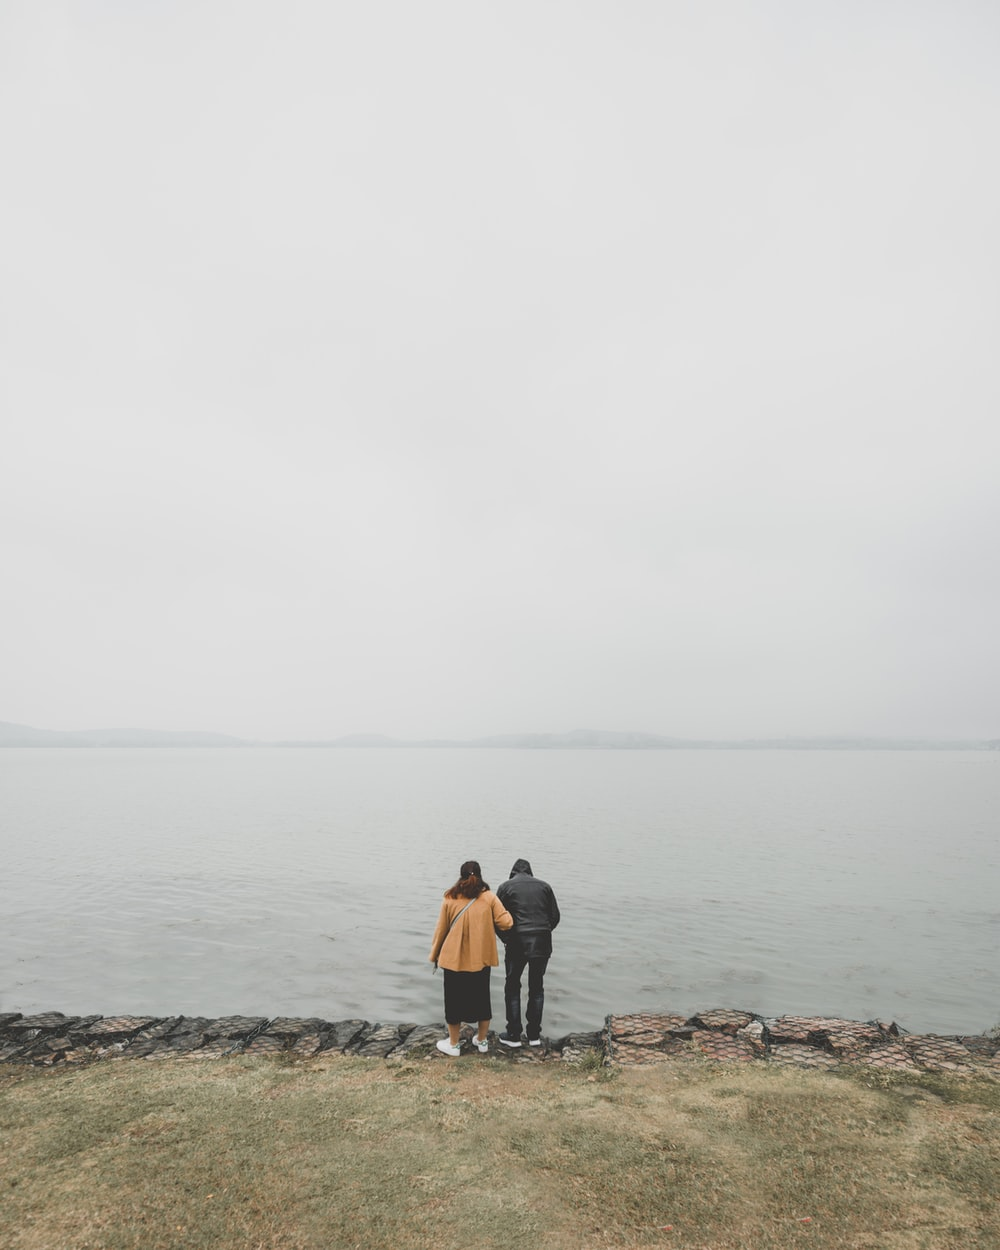 two person standing in front of body of water during daytime